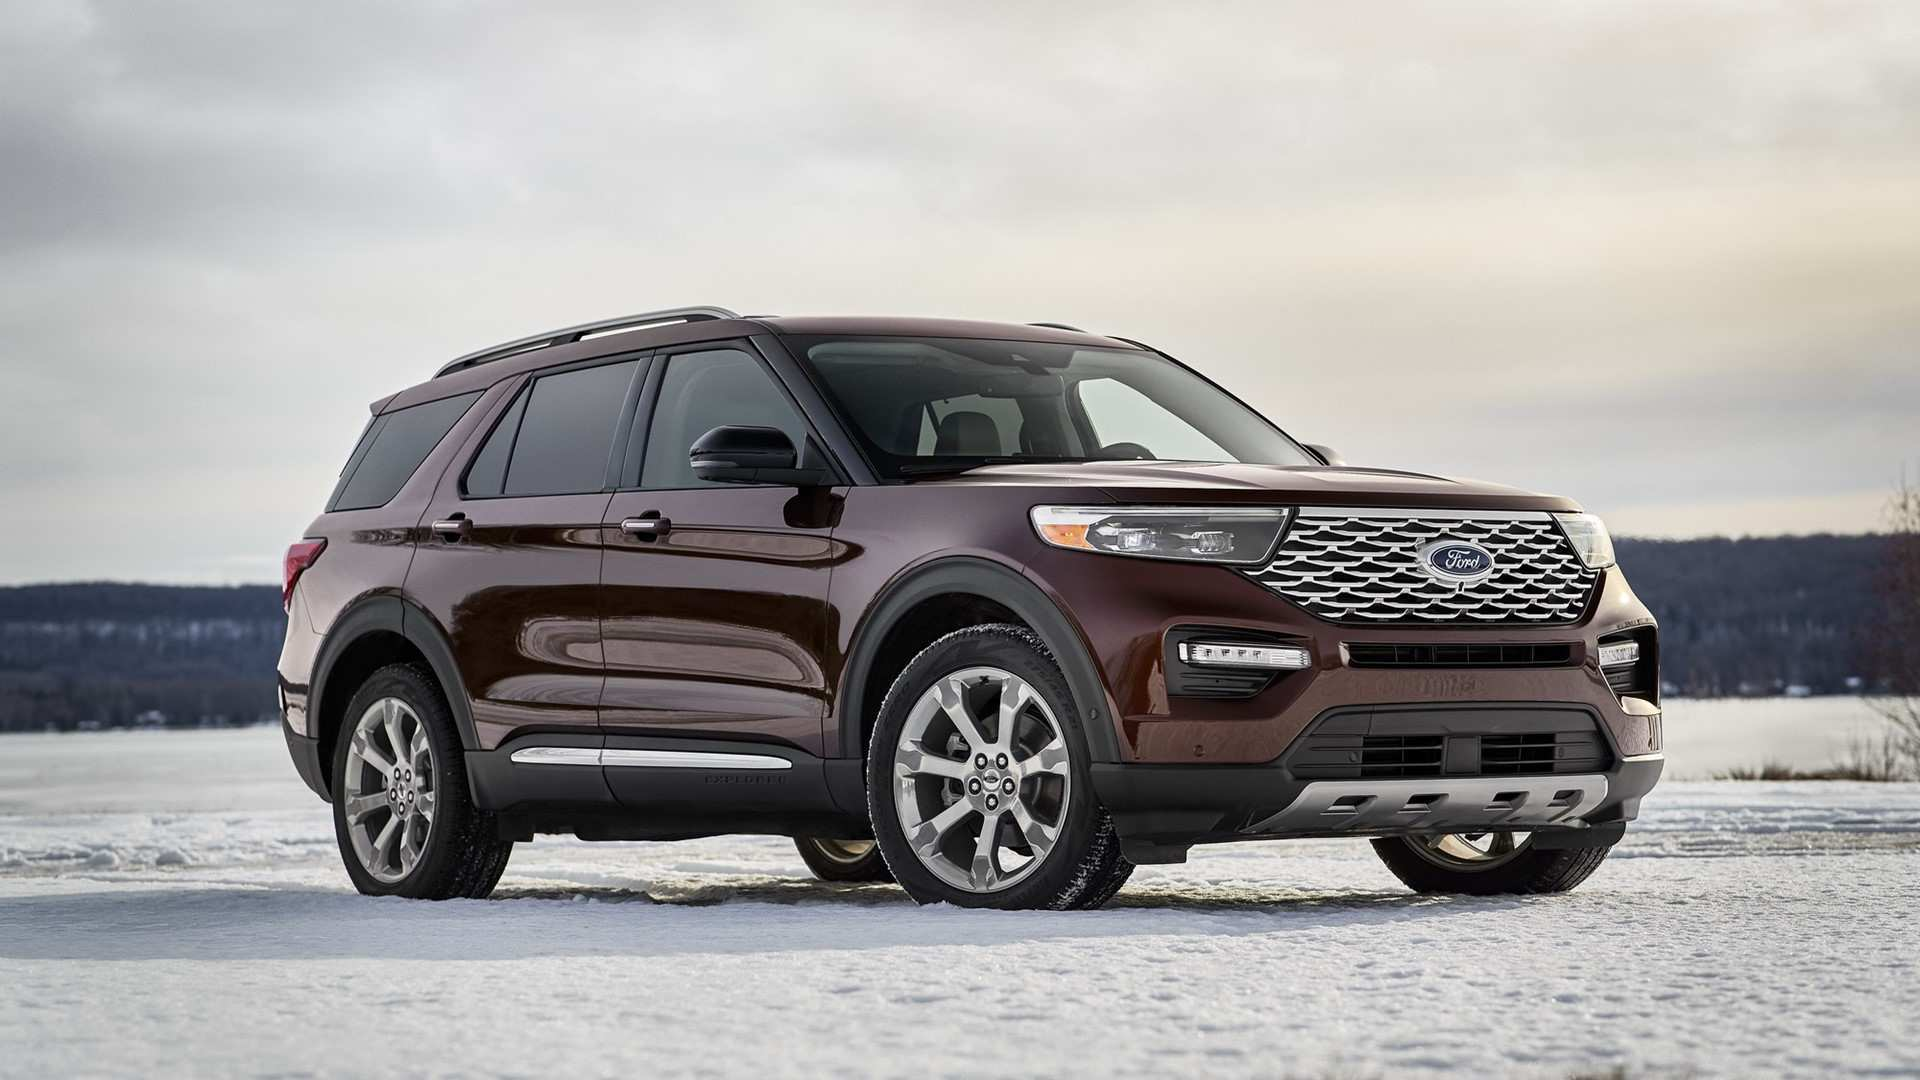 77 Great 2020 Ford Explorer Availability Wallpaper for 2020 Ford Explorer Availability